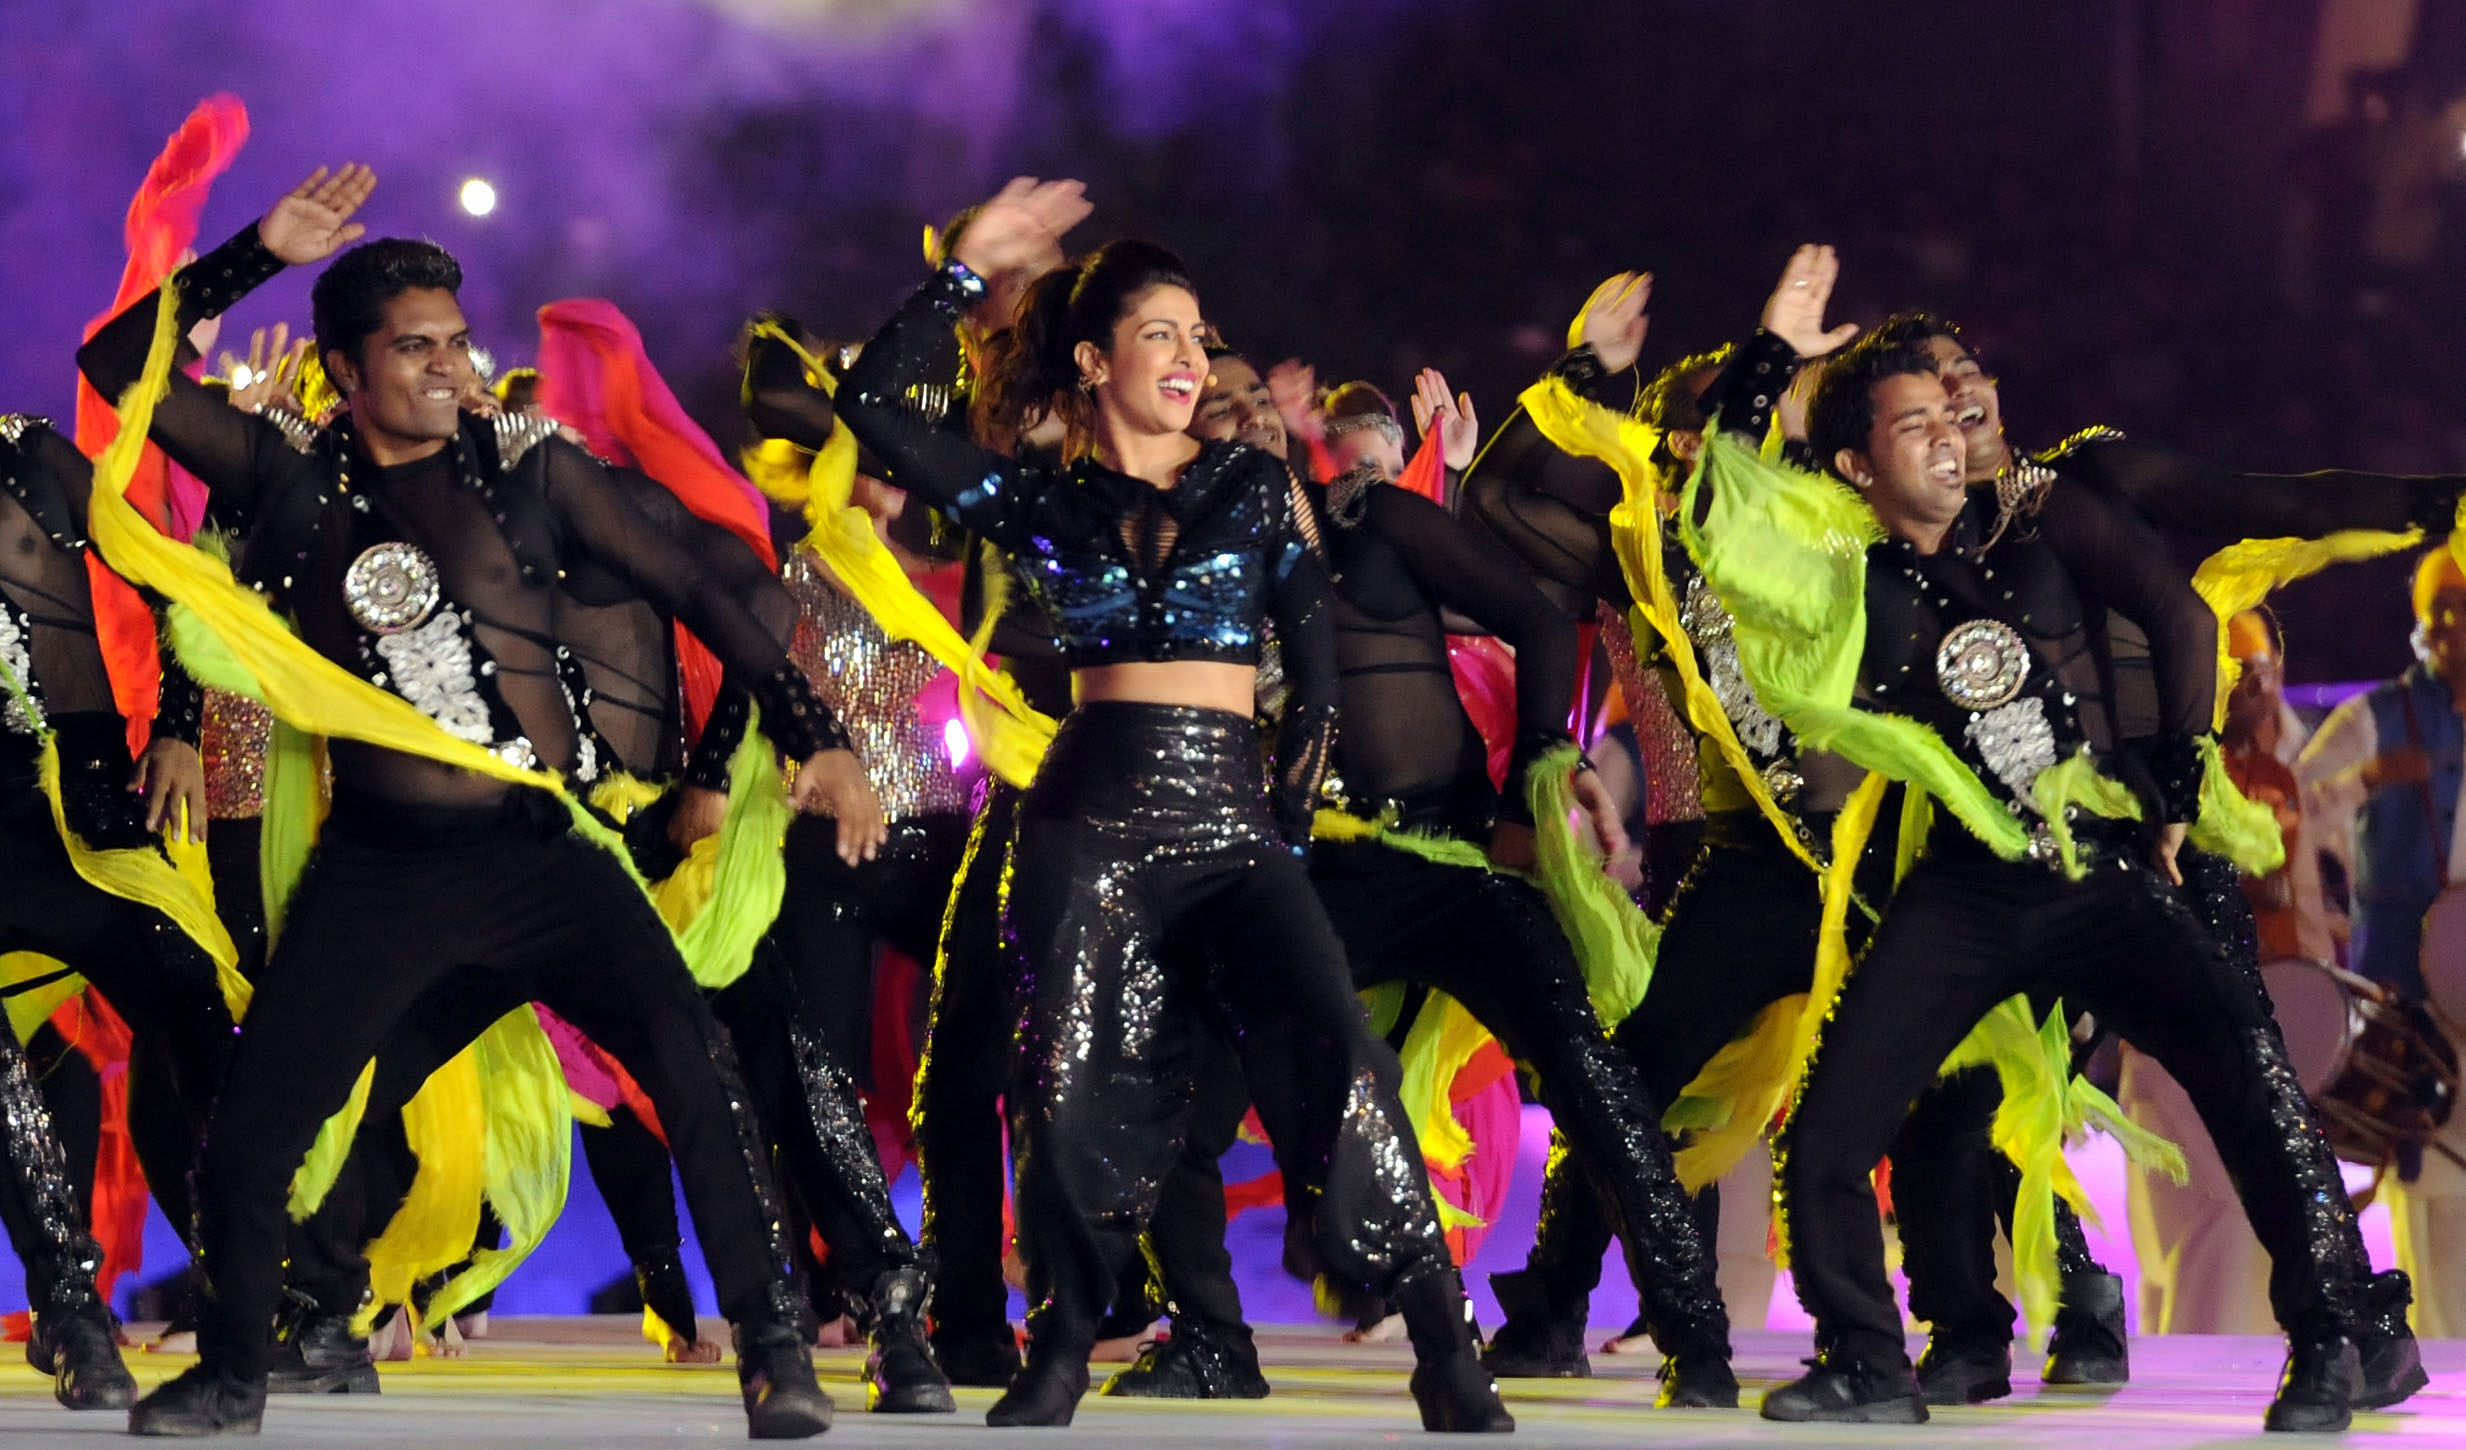 Bollywood actor Priyanka Chopra and her dance troupe performed during the ISL opening ceremony in 2014. Photo by Subhendu Ghosh/Hindustan Times via Getty Images